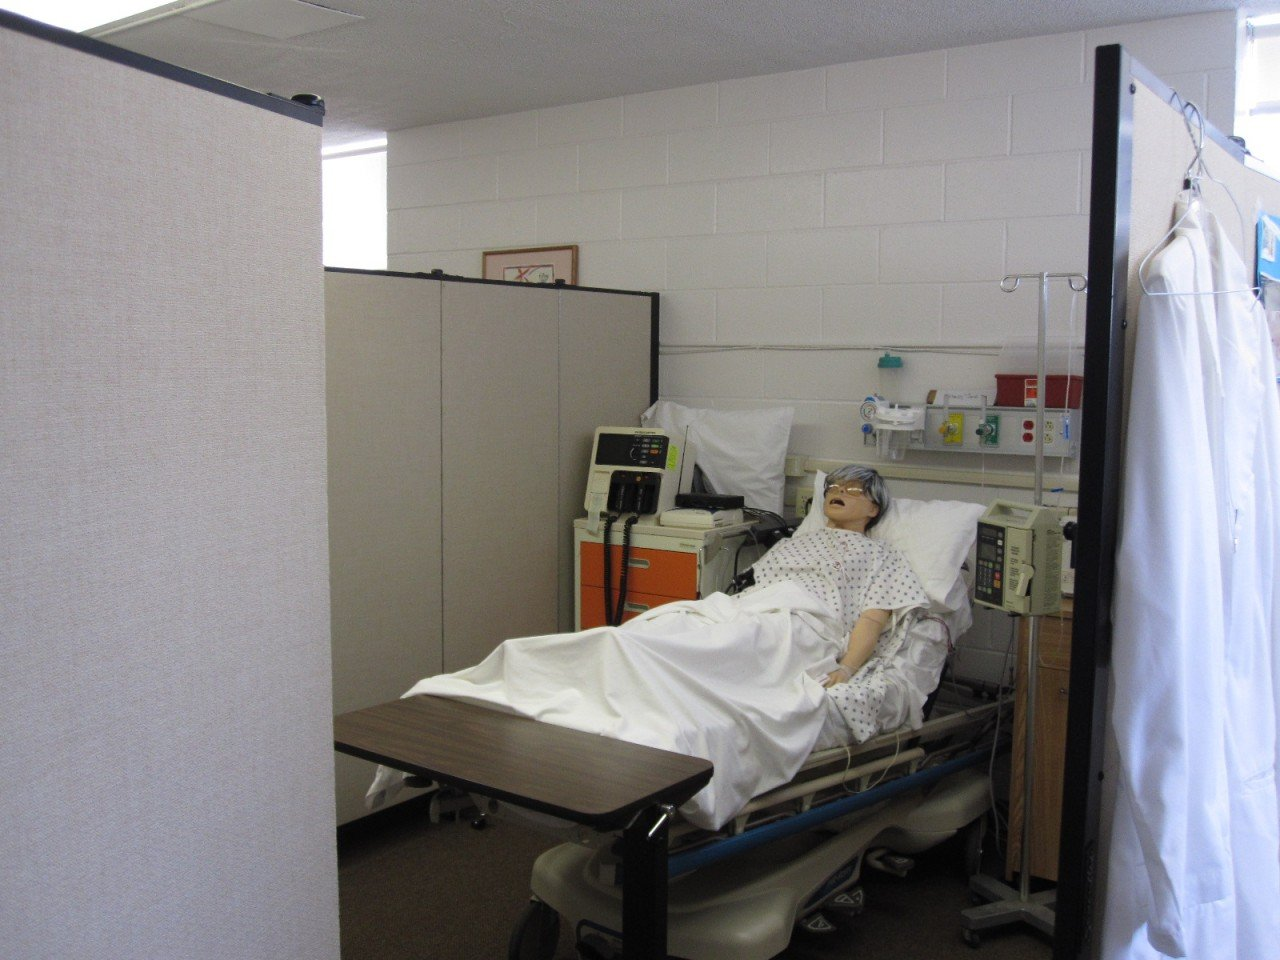 Room Divider Screens provide separation simulated hospital setting